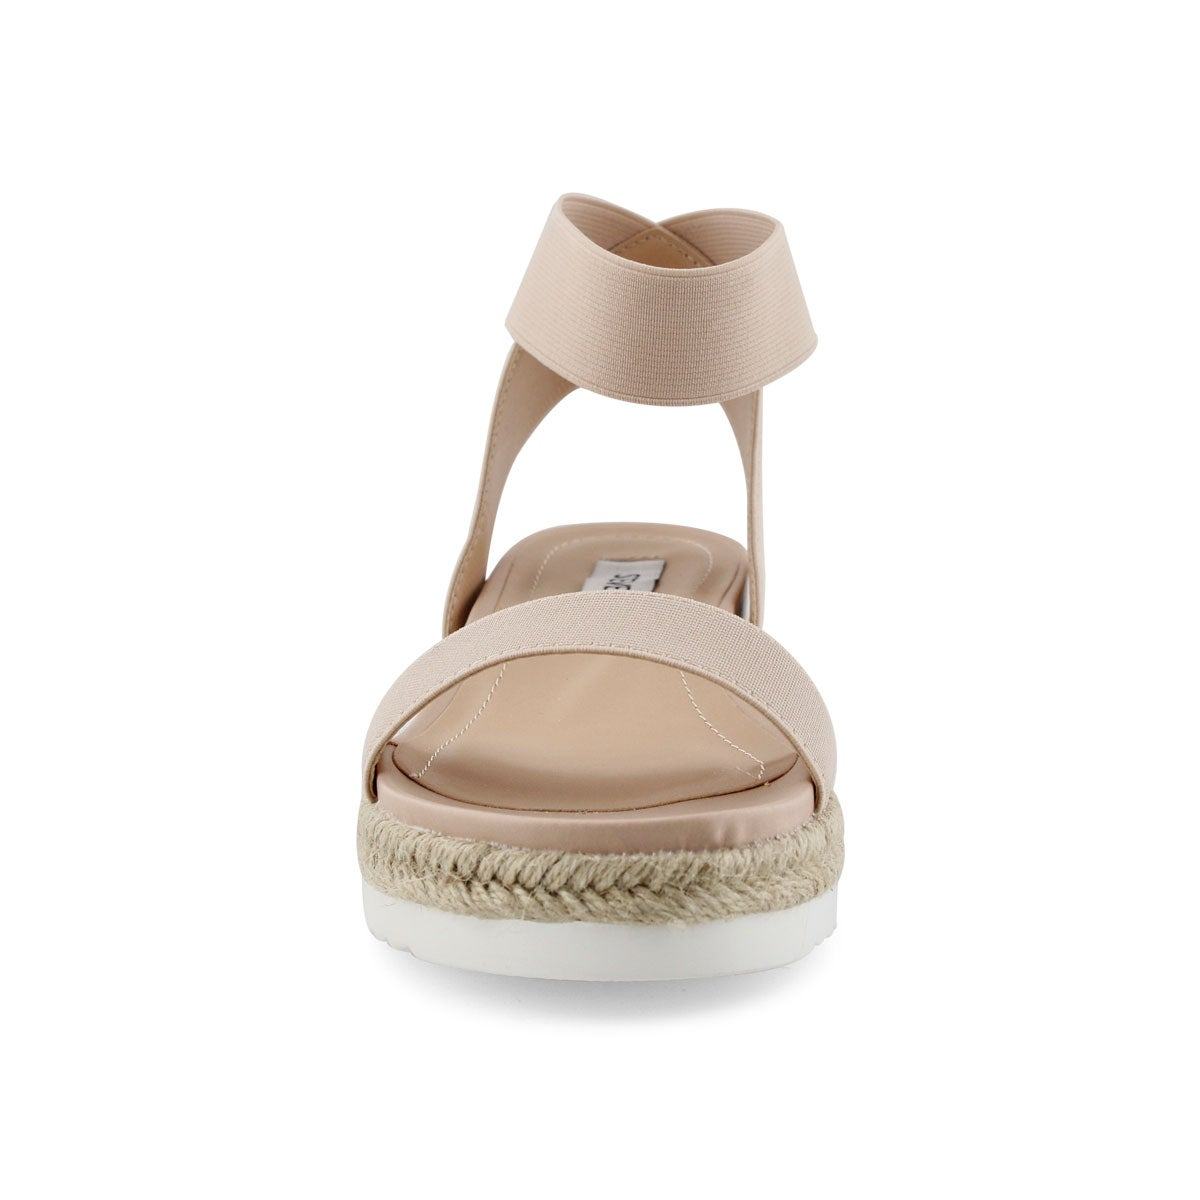 Lds Energyy blush wedge sandal